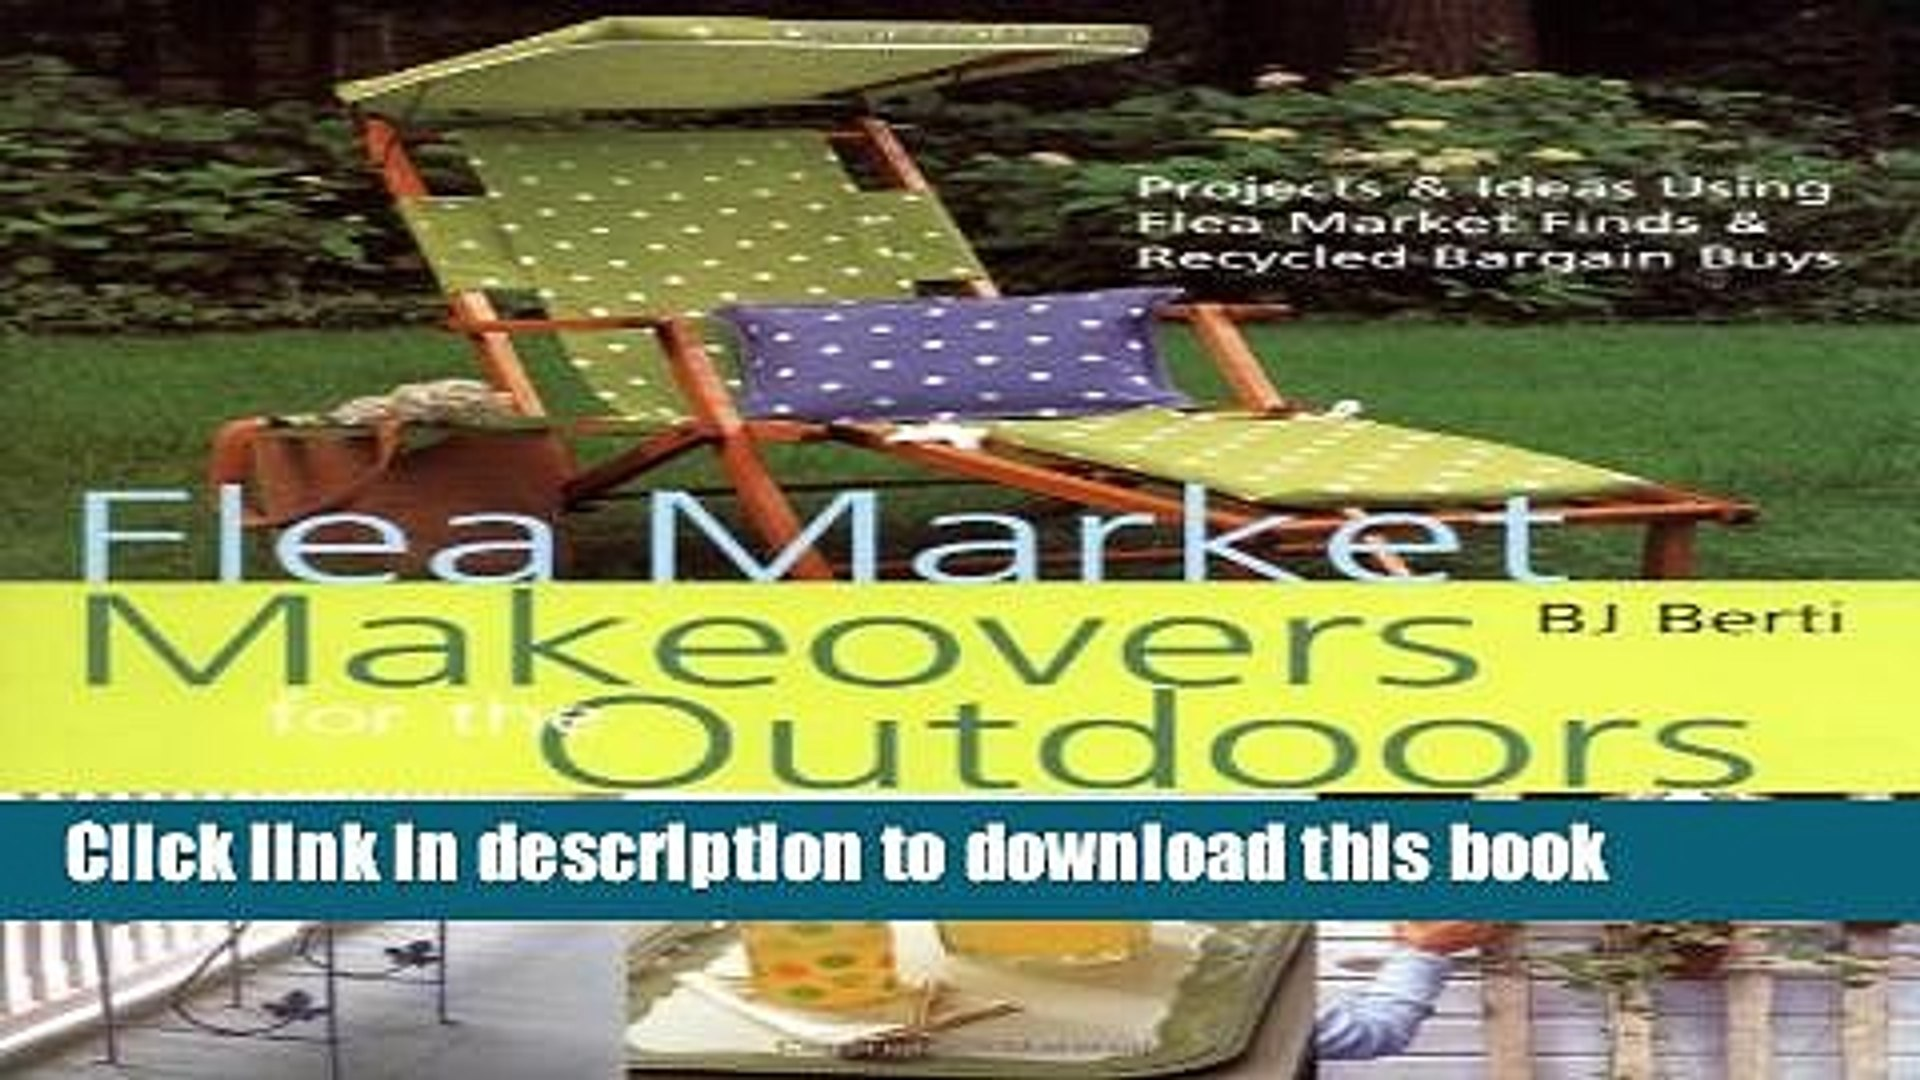 [PDF] Flea Market Makeovers for the Outdoors: Projects   Ideas Using Flea Market Finds ... [Read]